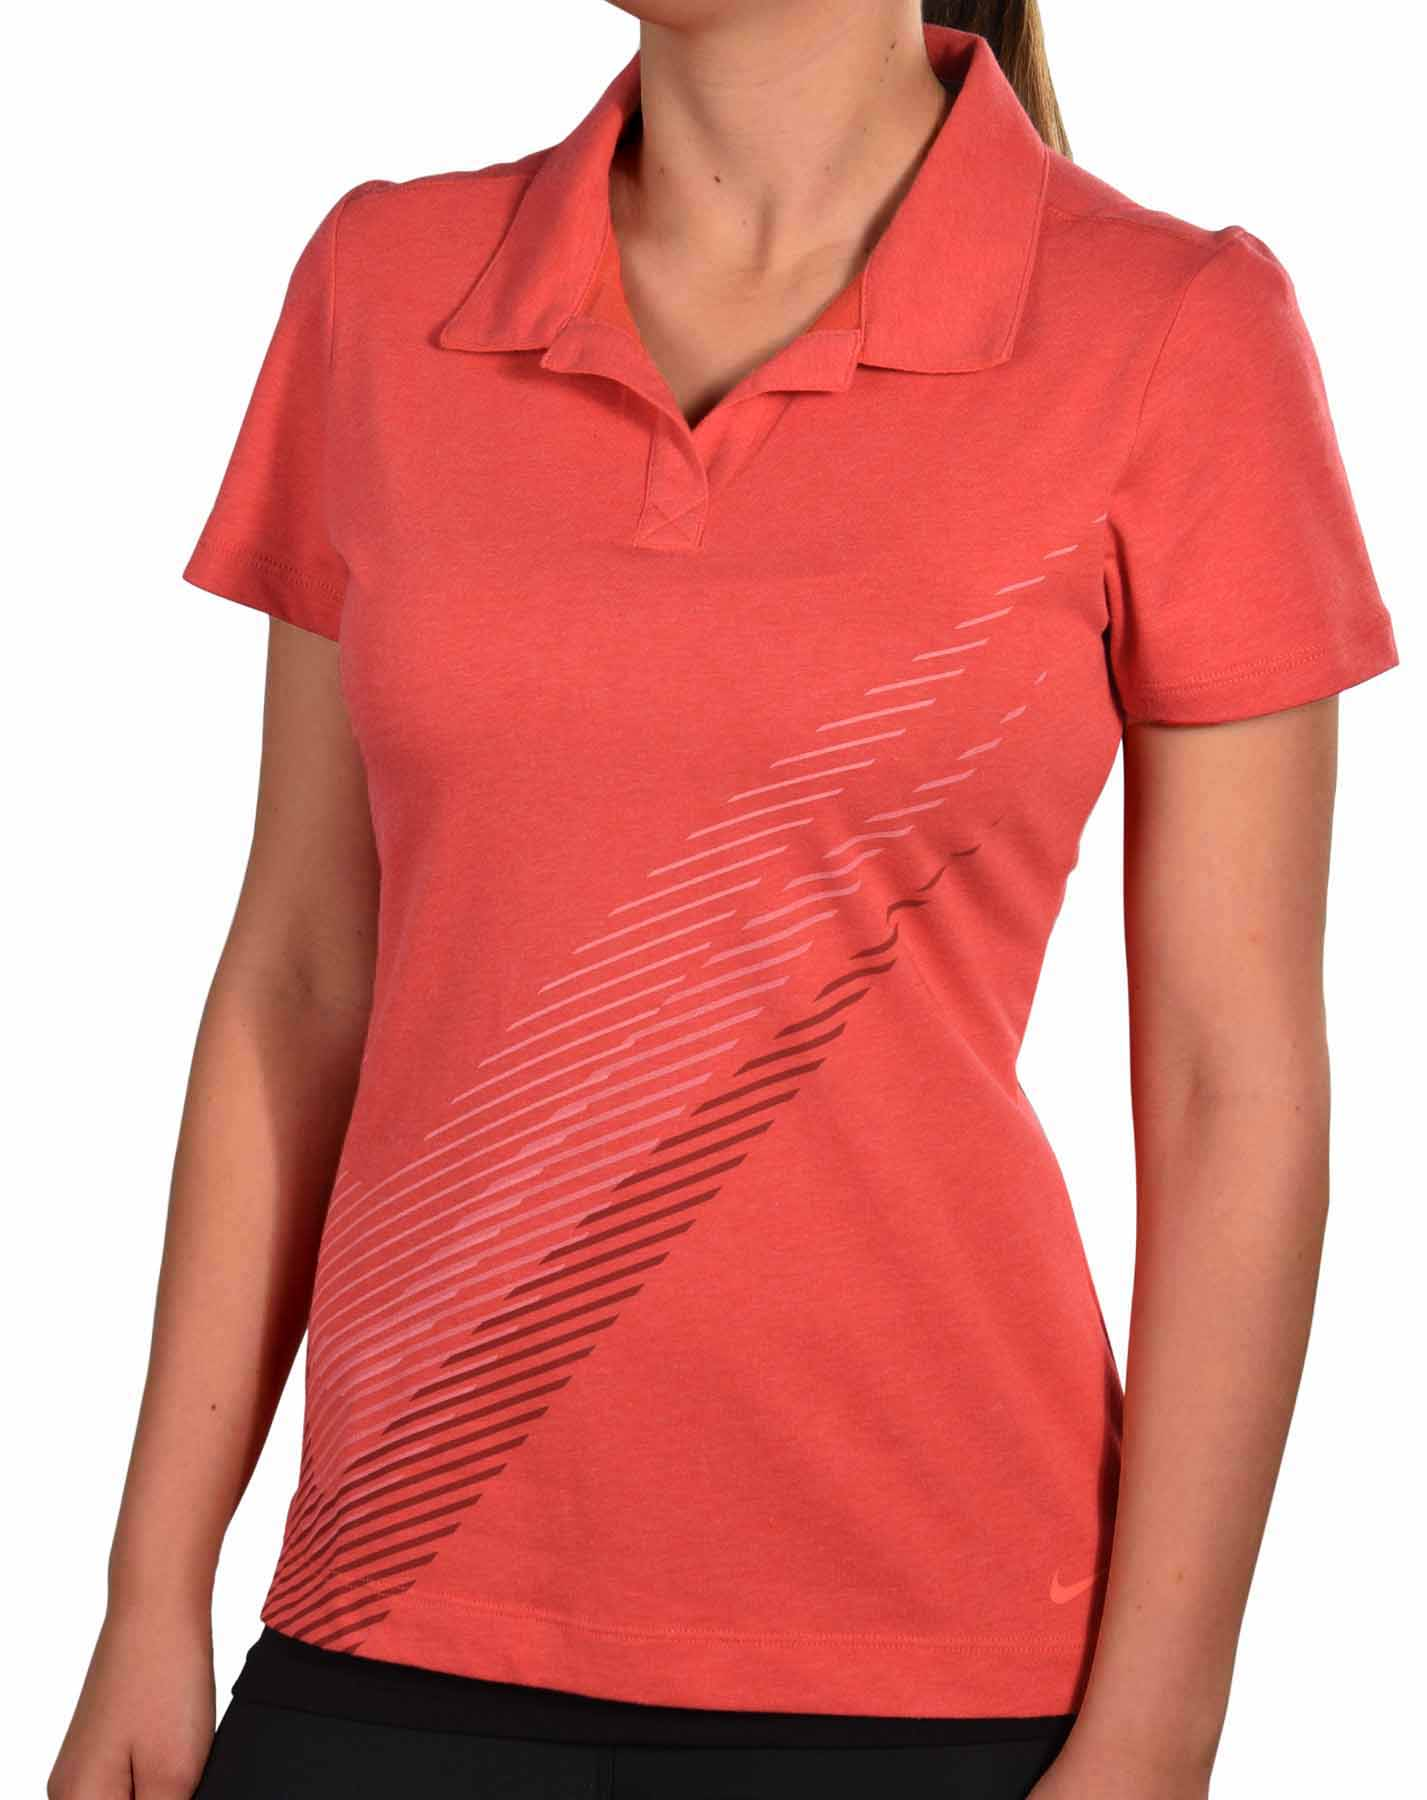 Nike women 39 s dri fit sports swoosh golf polo shirt for Women s dri fit golf shirts